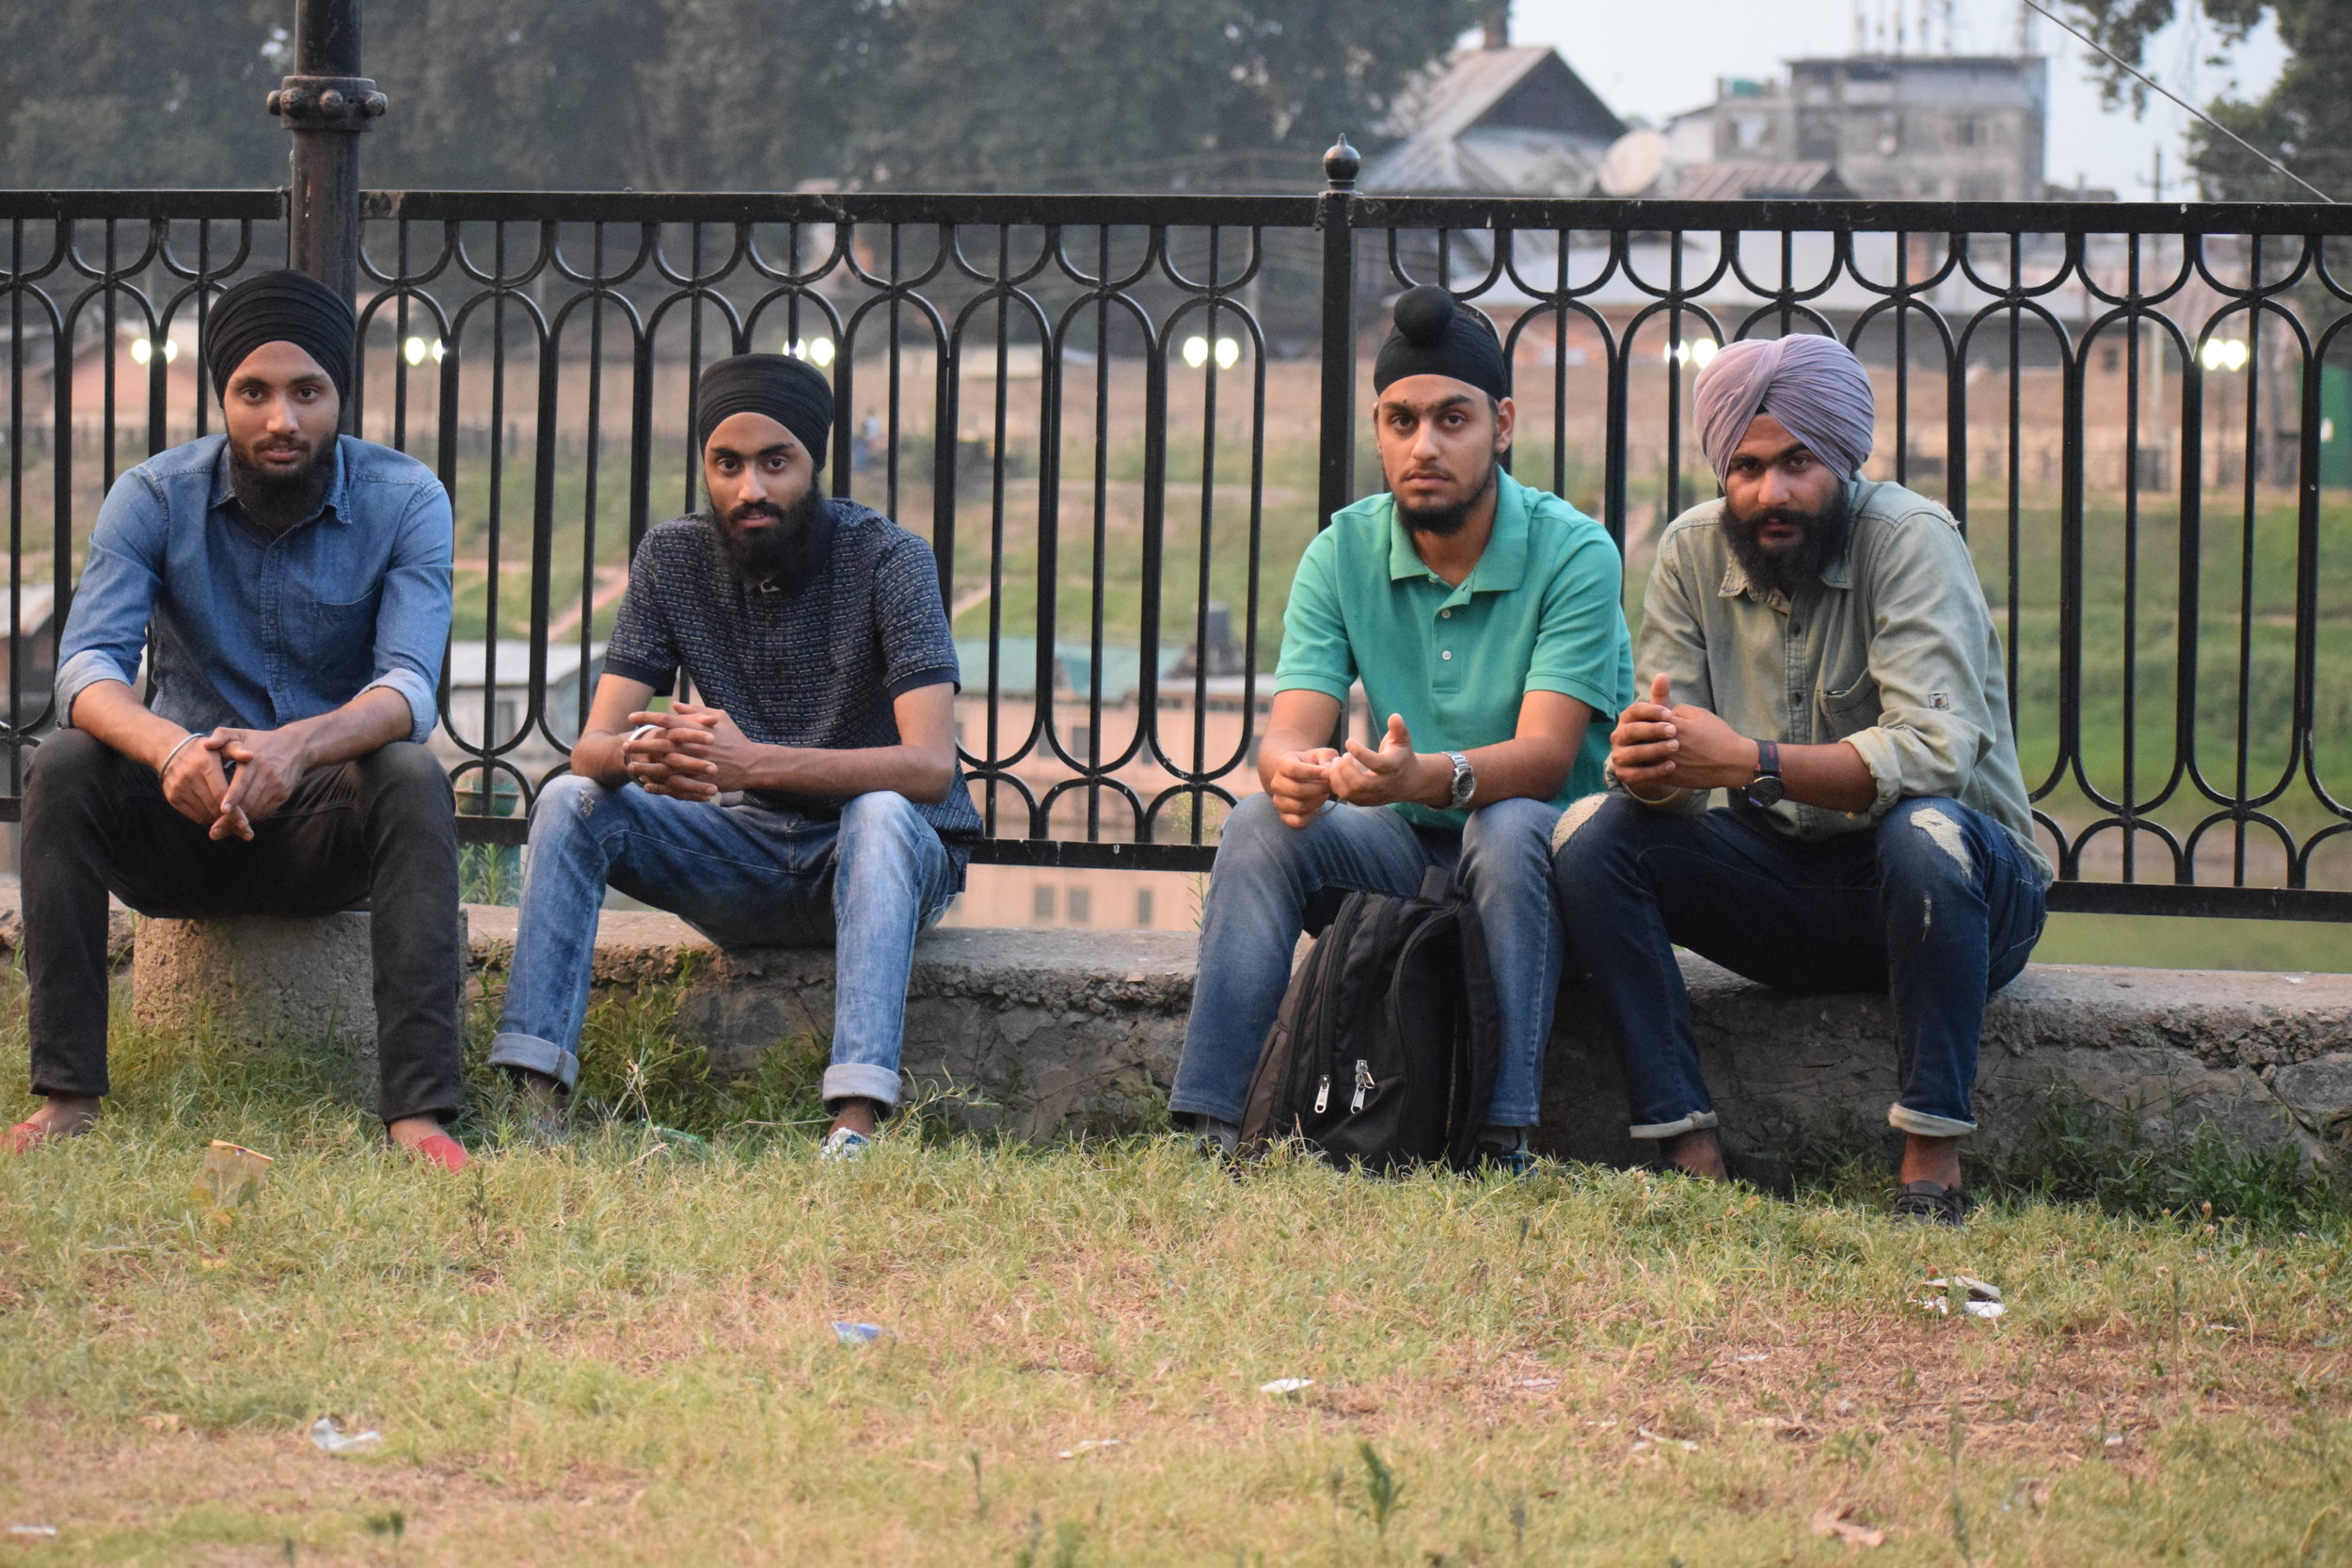 Young Sikhs feel dejected due to the broken promises by successive regimes. Sikhs say they are witnessing silent migration towards other Indian states due to lack of jobs for minorities in the state. Photo by Karanjeet Singh.